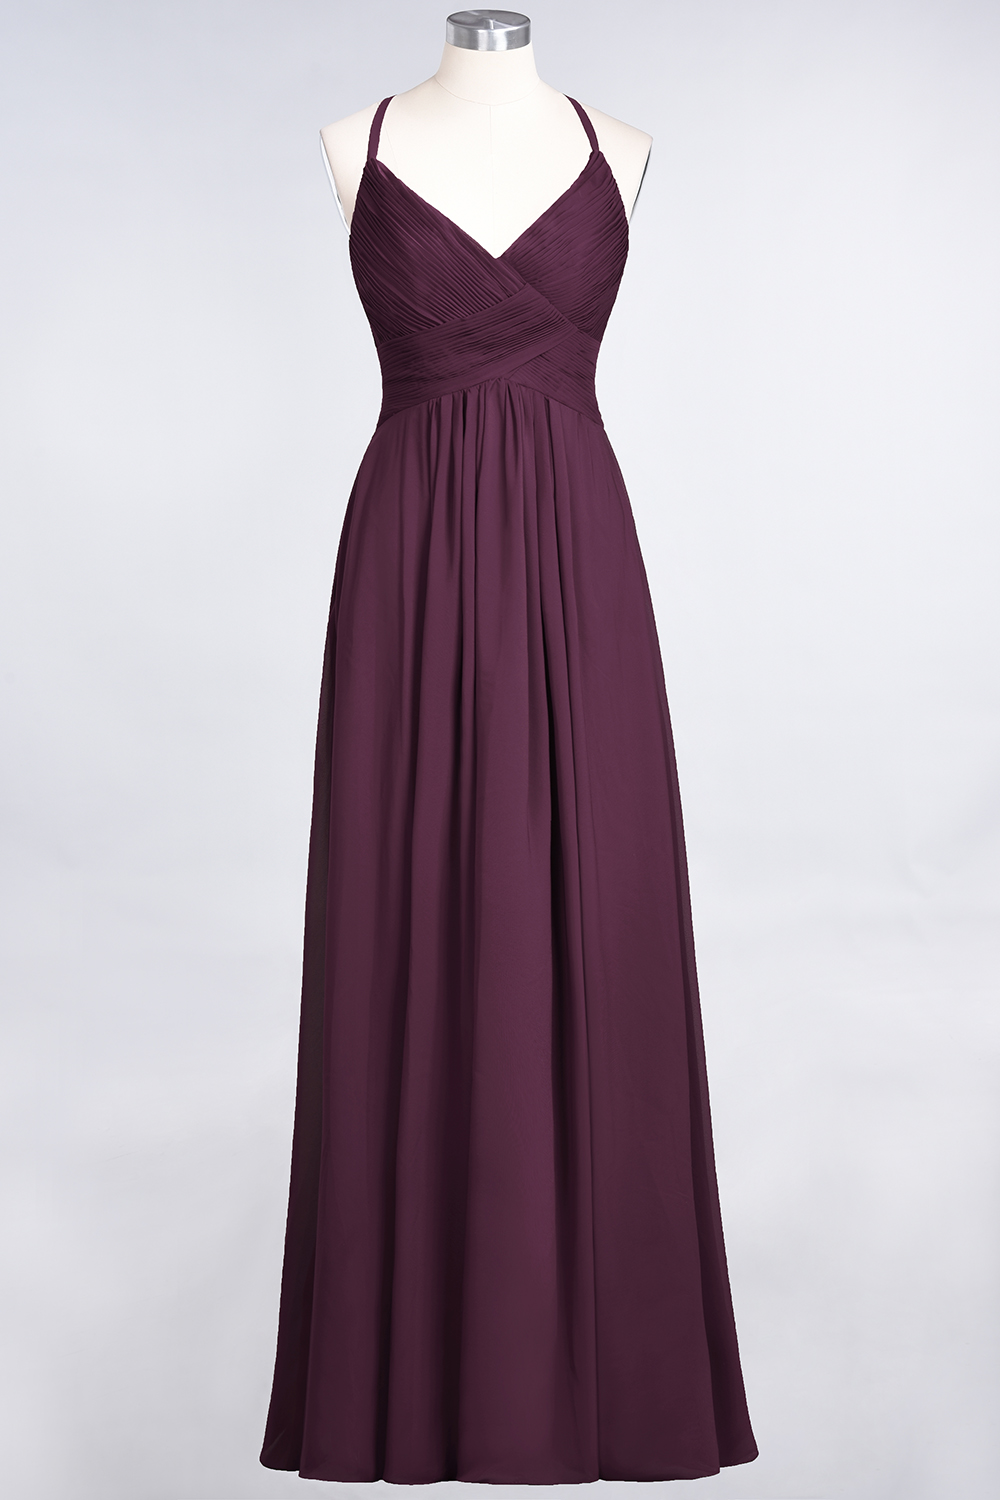 BMbridal Affordable Chiffon Ruffle V-Neck Bridesmaid Dress with Spaghetti Straps